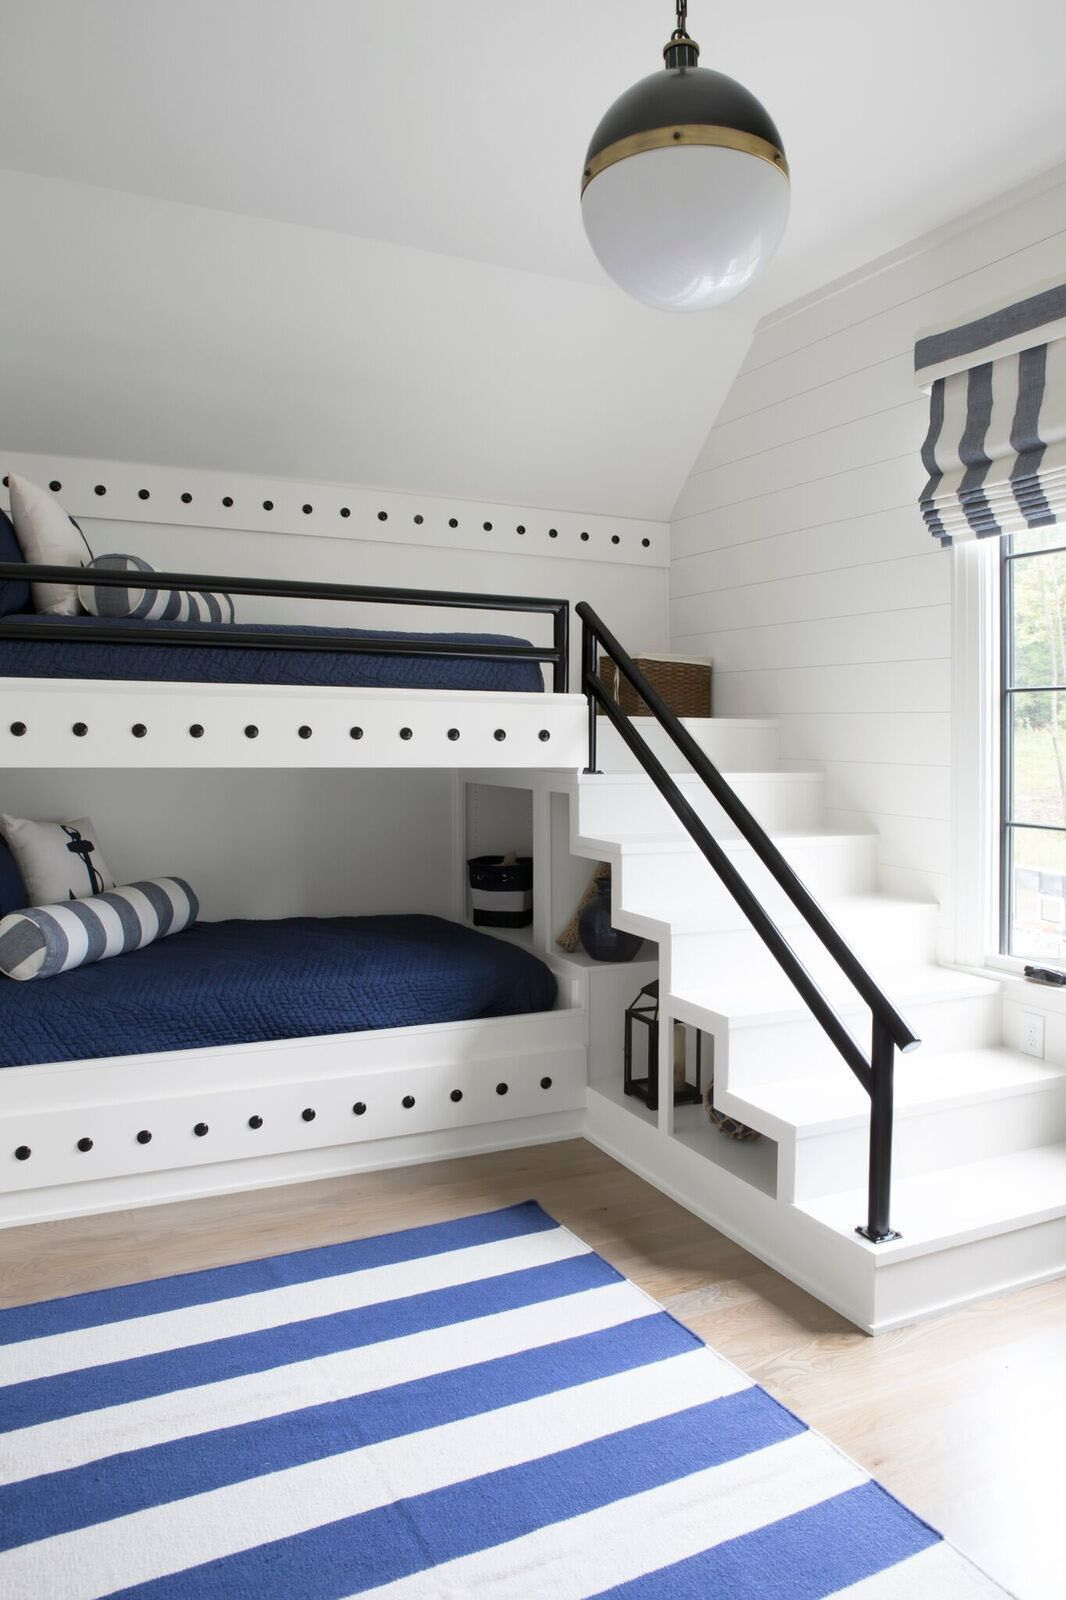 Find Your Peacefulness With These White Room Concepts Bunk Bed